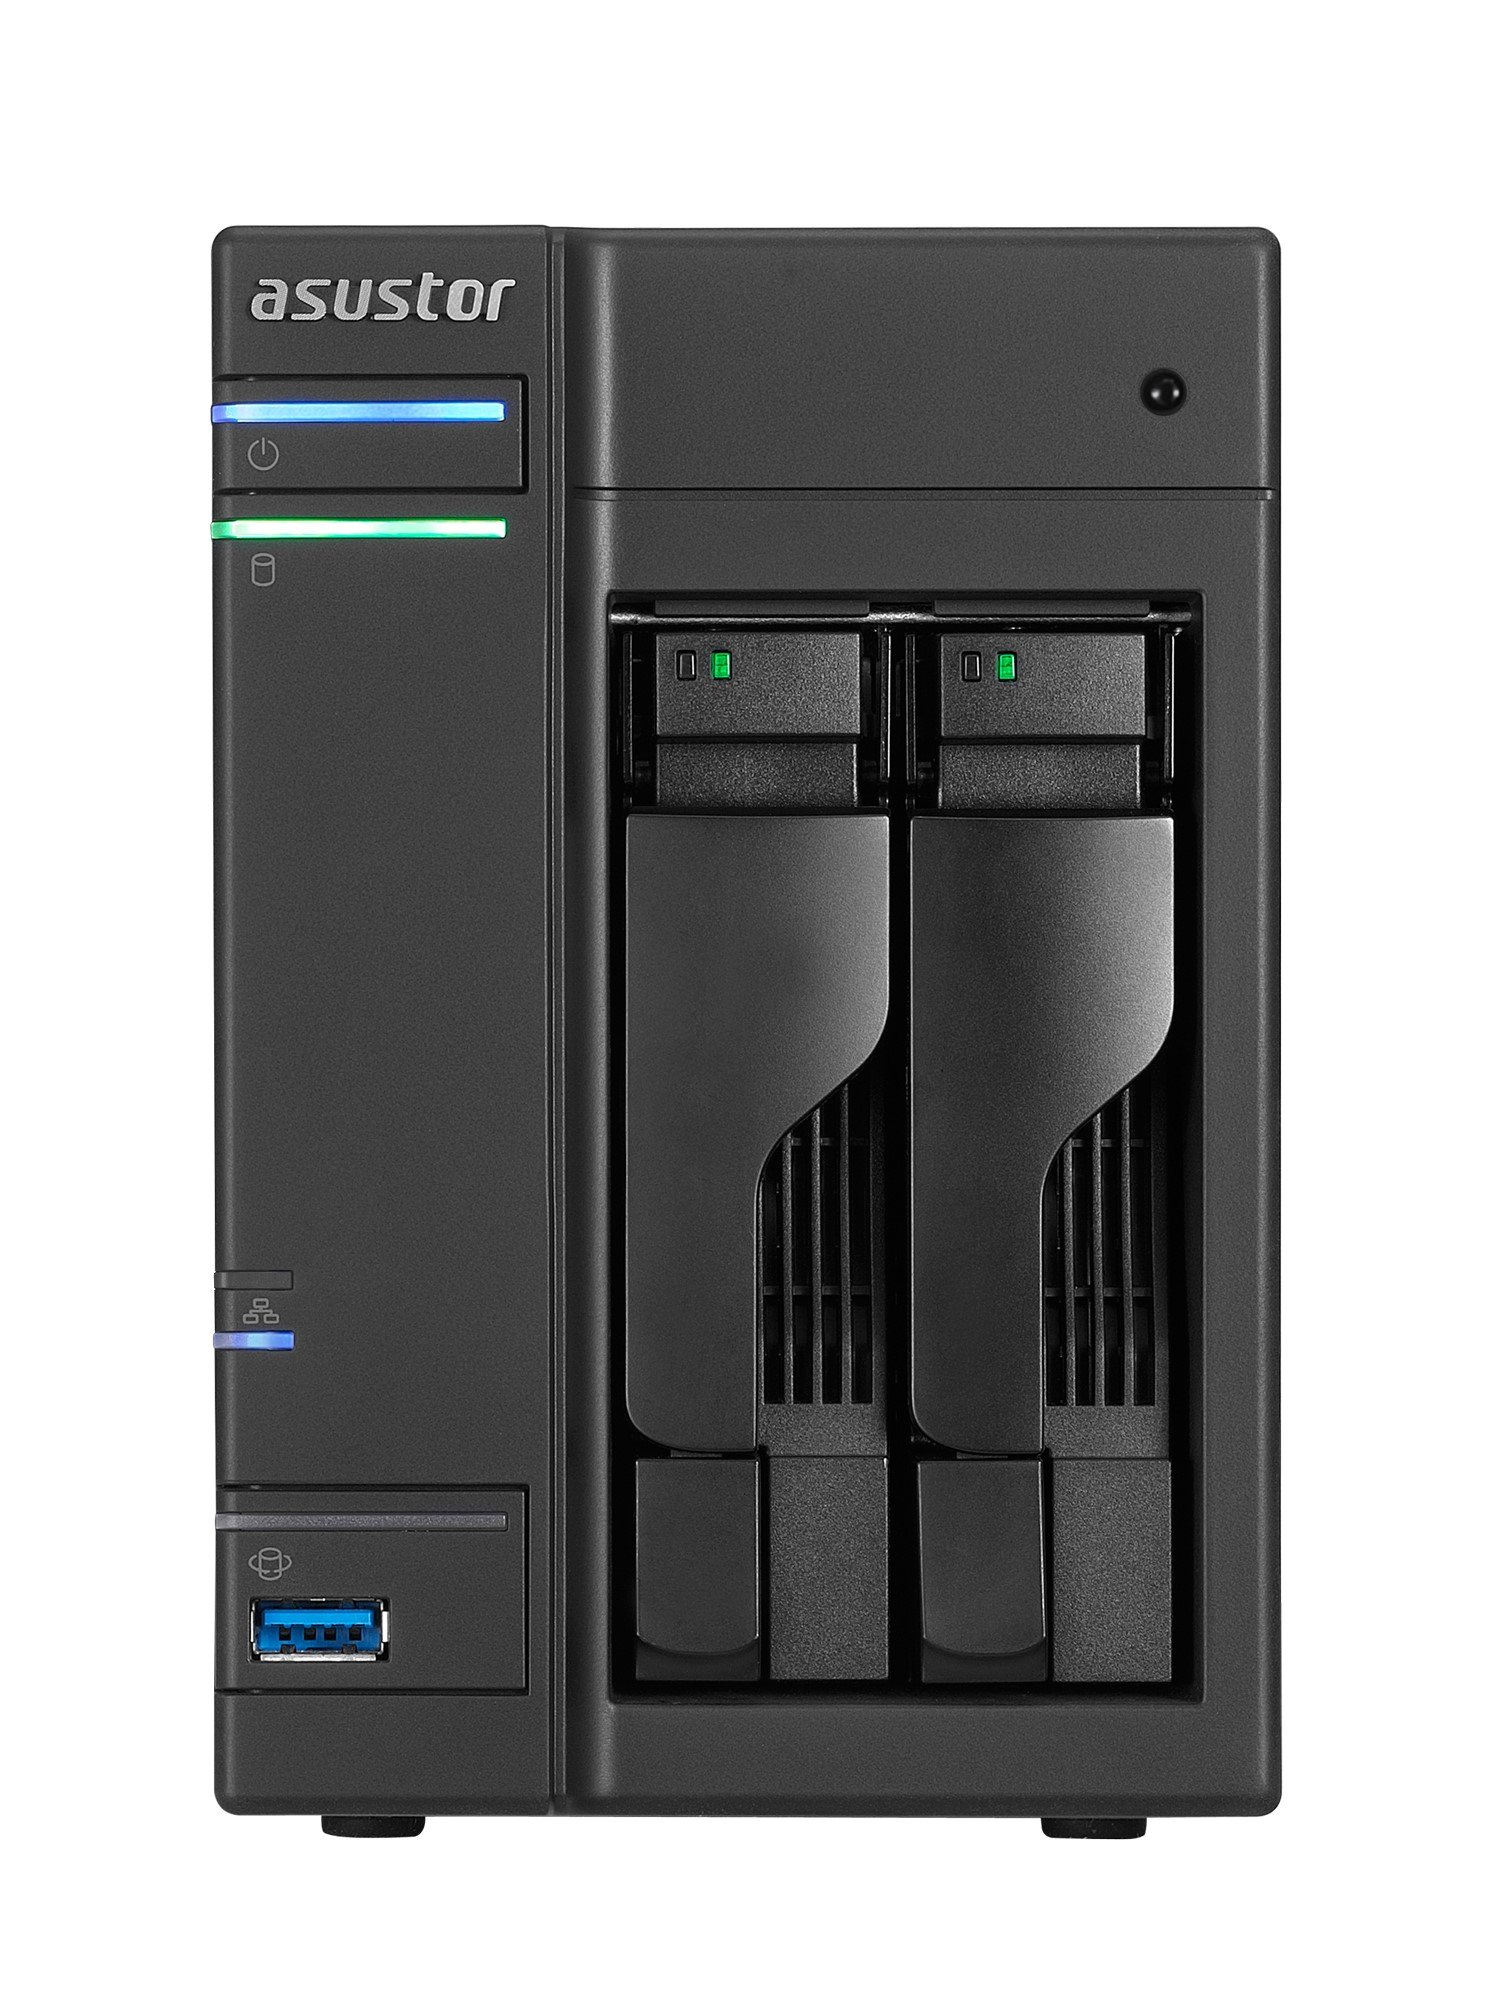 Asustor AS-302T Serveur NAS USB 2.0 product image